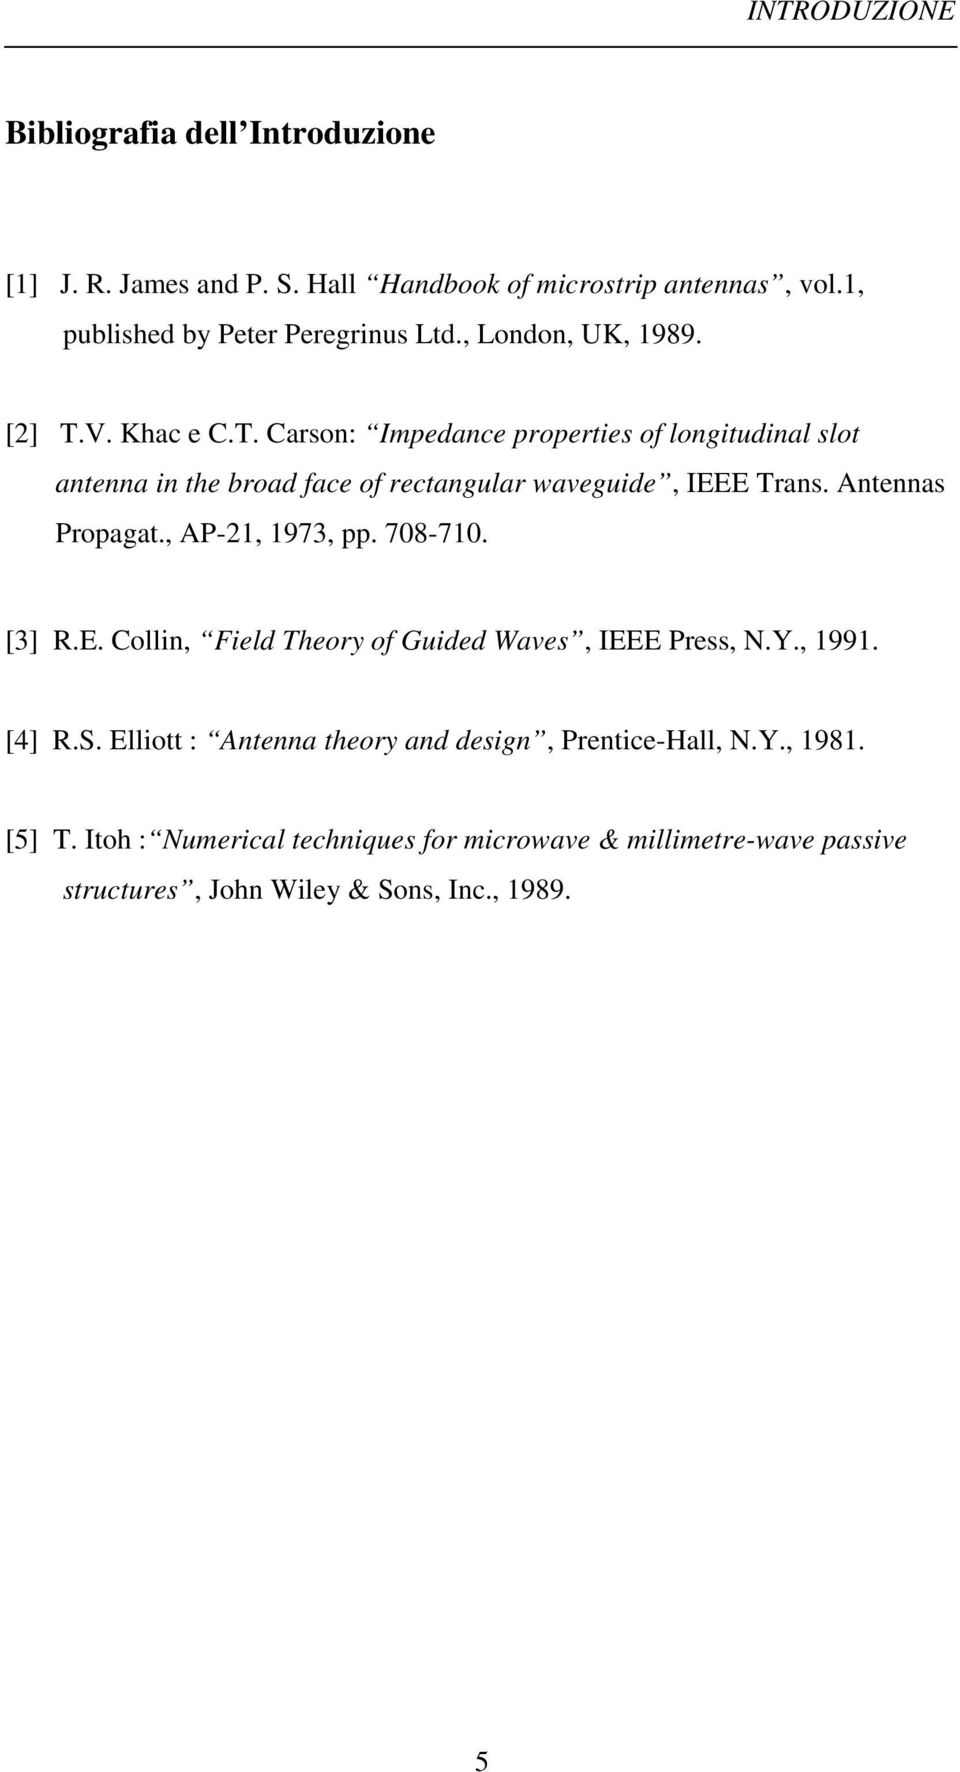 tes Propgt., P-, 973, pp. 78-7. [3] R.E. Colli, ield Theory of Guided Wves, IEEE Press, N.Y., 99. [4] R.S.